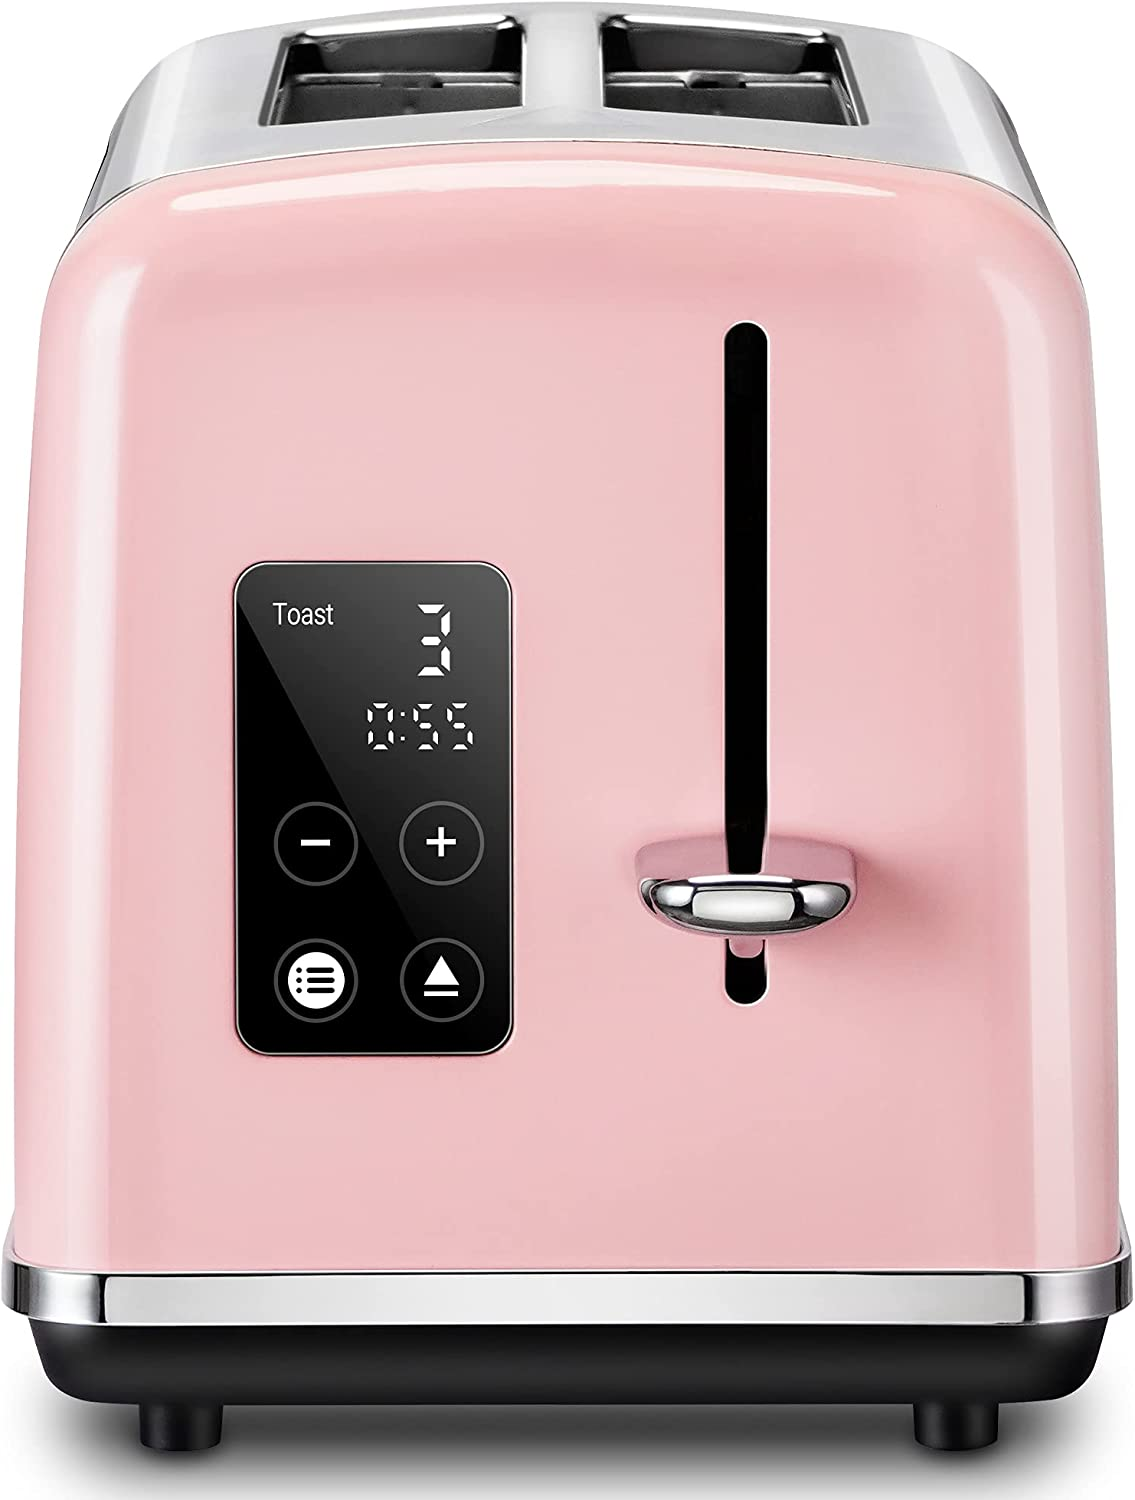 REDMOND Toaster 2 Slice, Pink Toasters Full Touch LED Display, Stainless Steel with Extra Wide Slot and Cancel Defrost Reheat Function, 6 Shade Settings, ST039